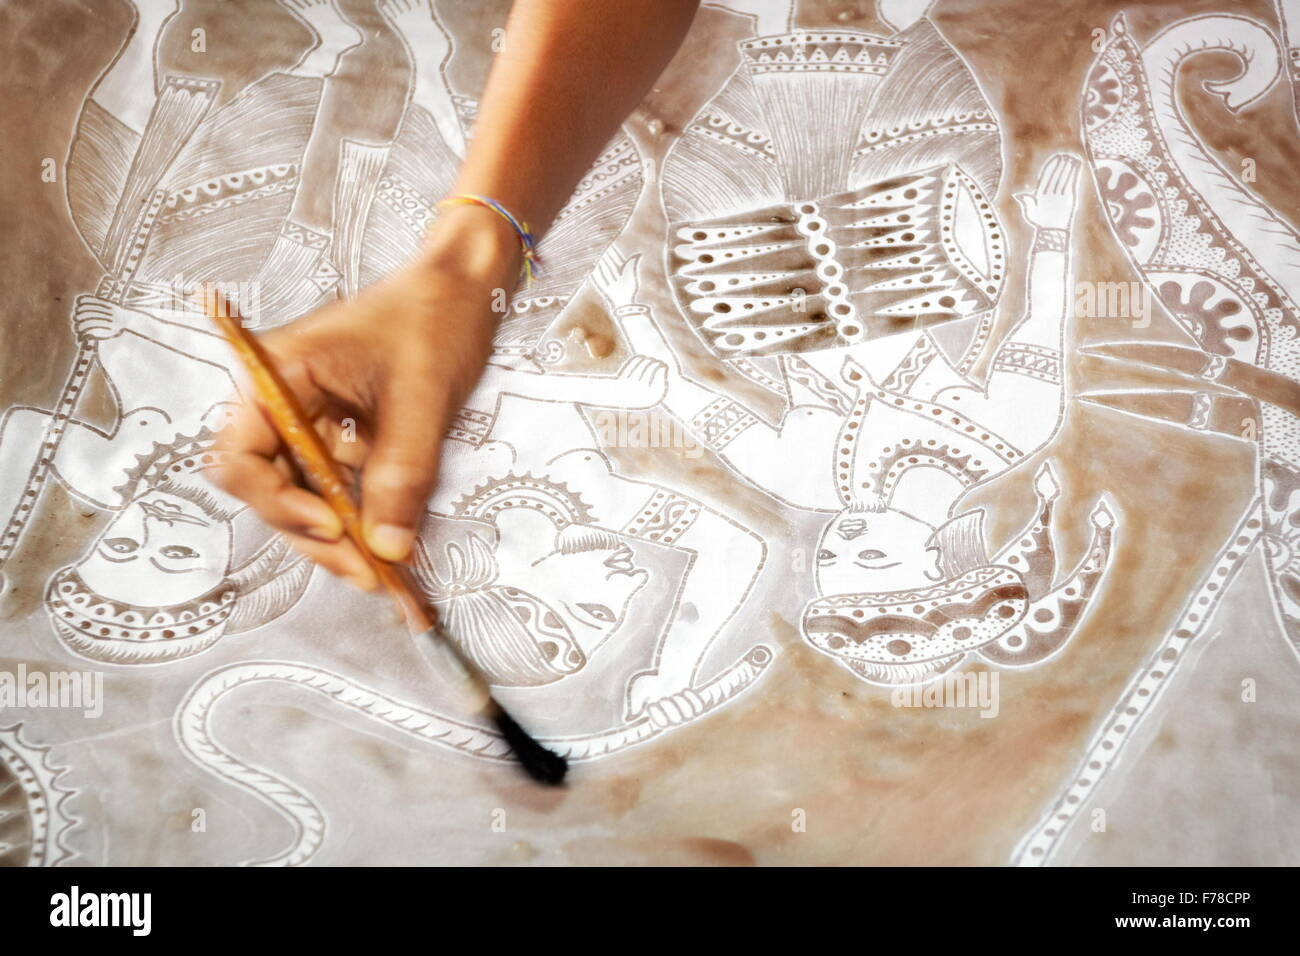 Sri Lanka - Matale, workshop, art of batik - Stock Image